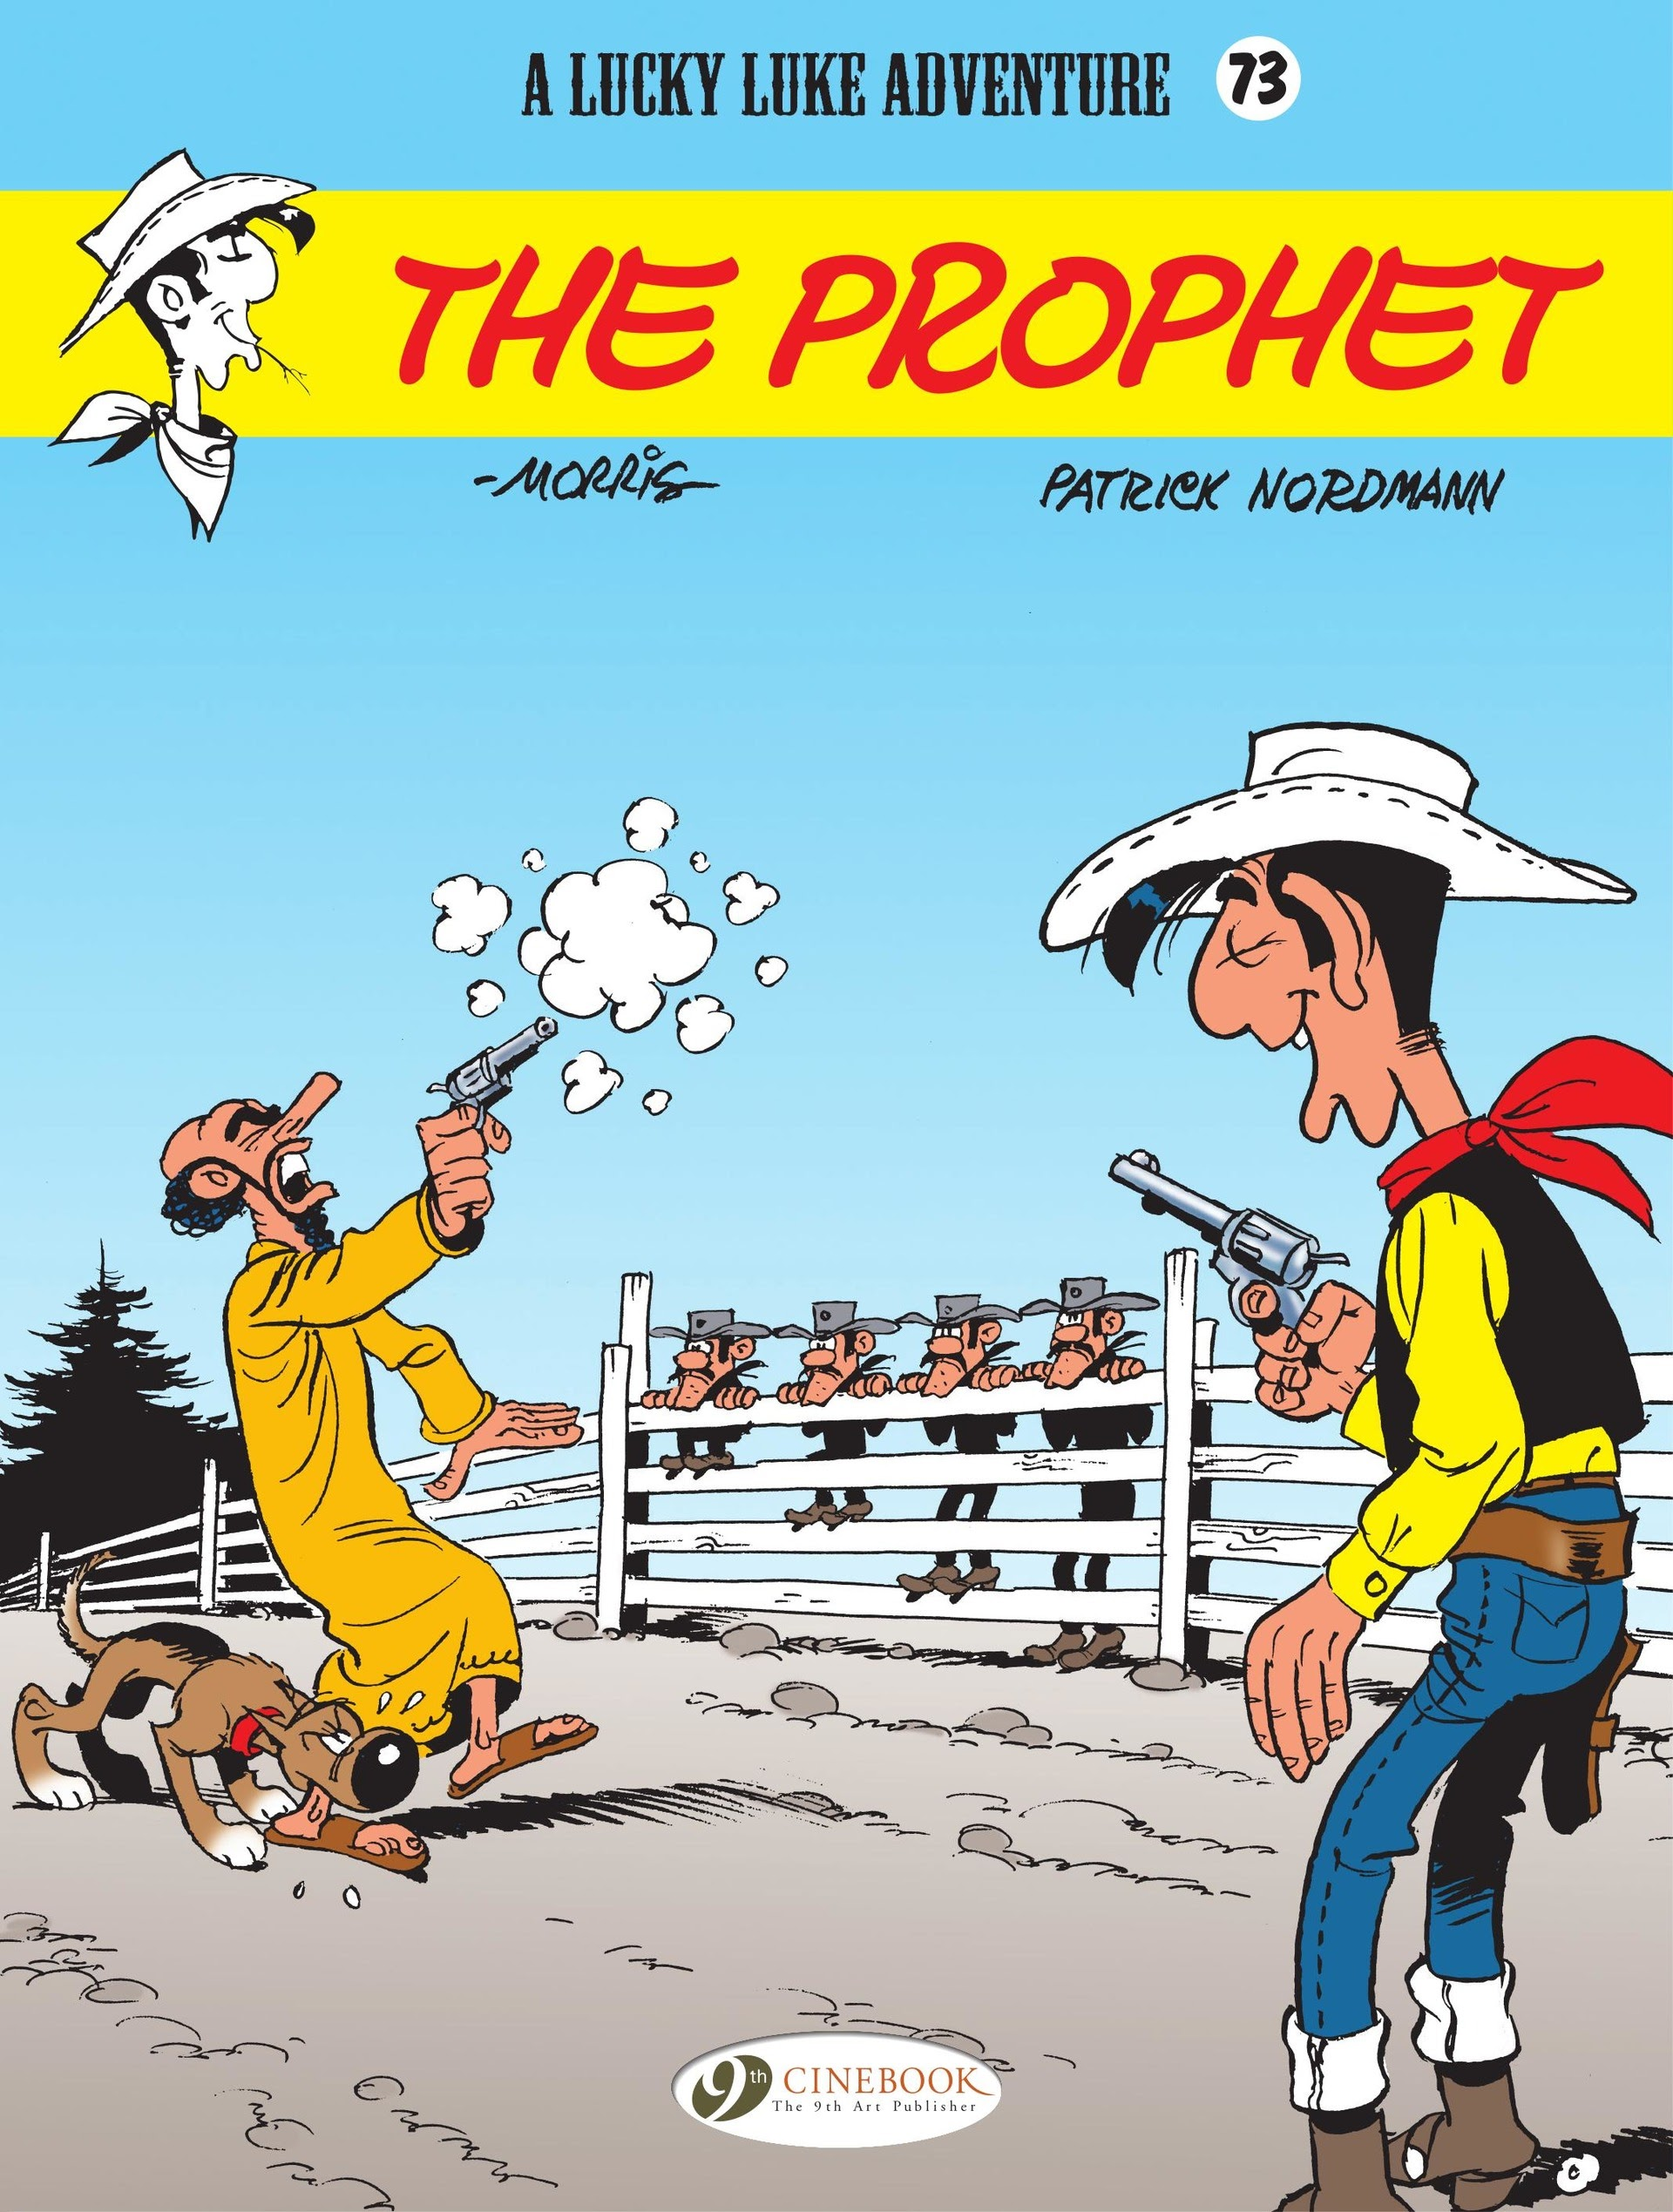 A Lucky Luke Adventure 73 Page 1